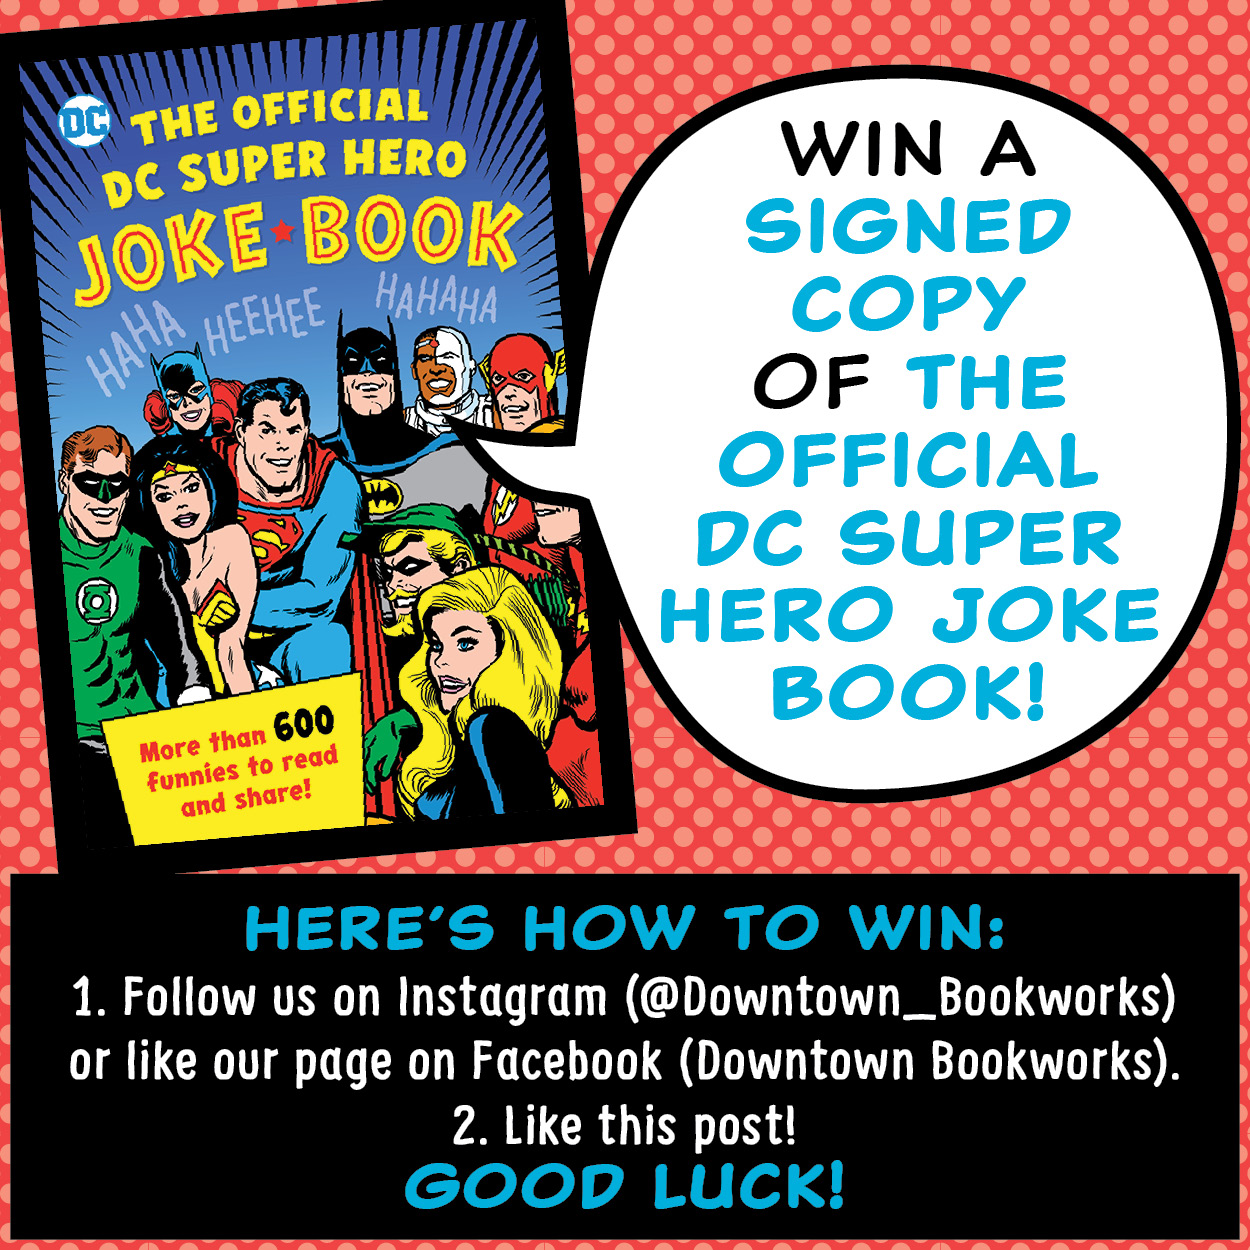 Official DC Super Hero Joke Book Giveaway From Downtown